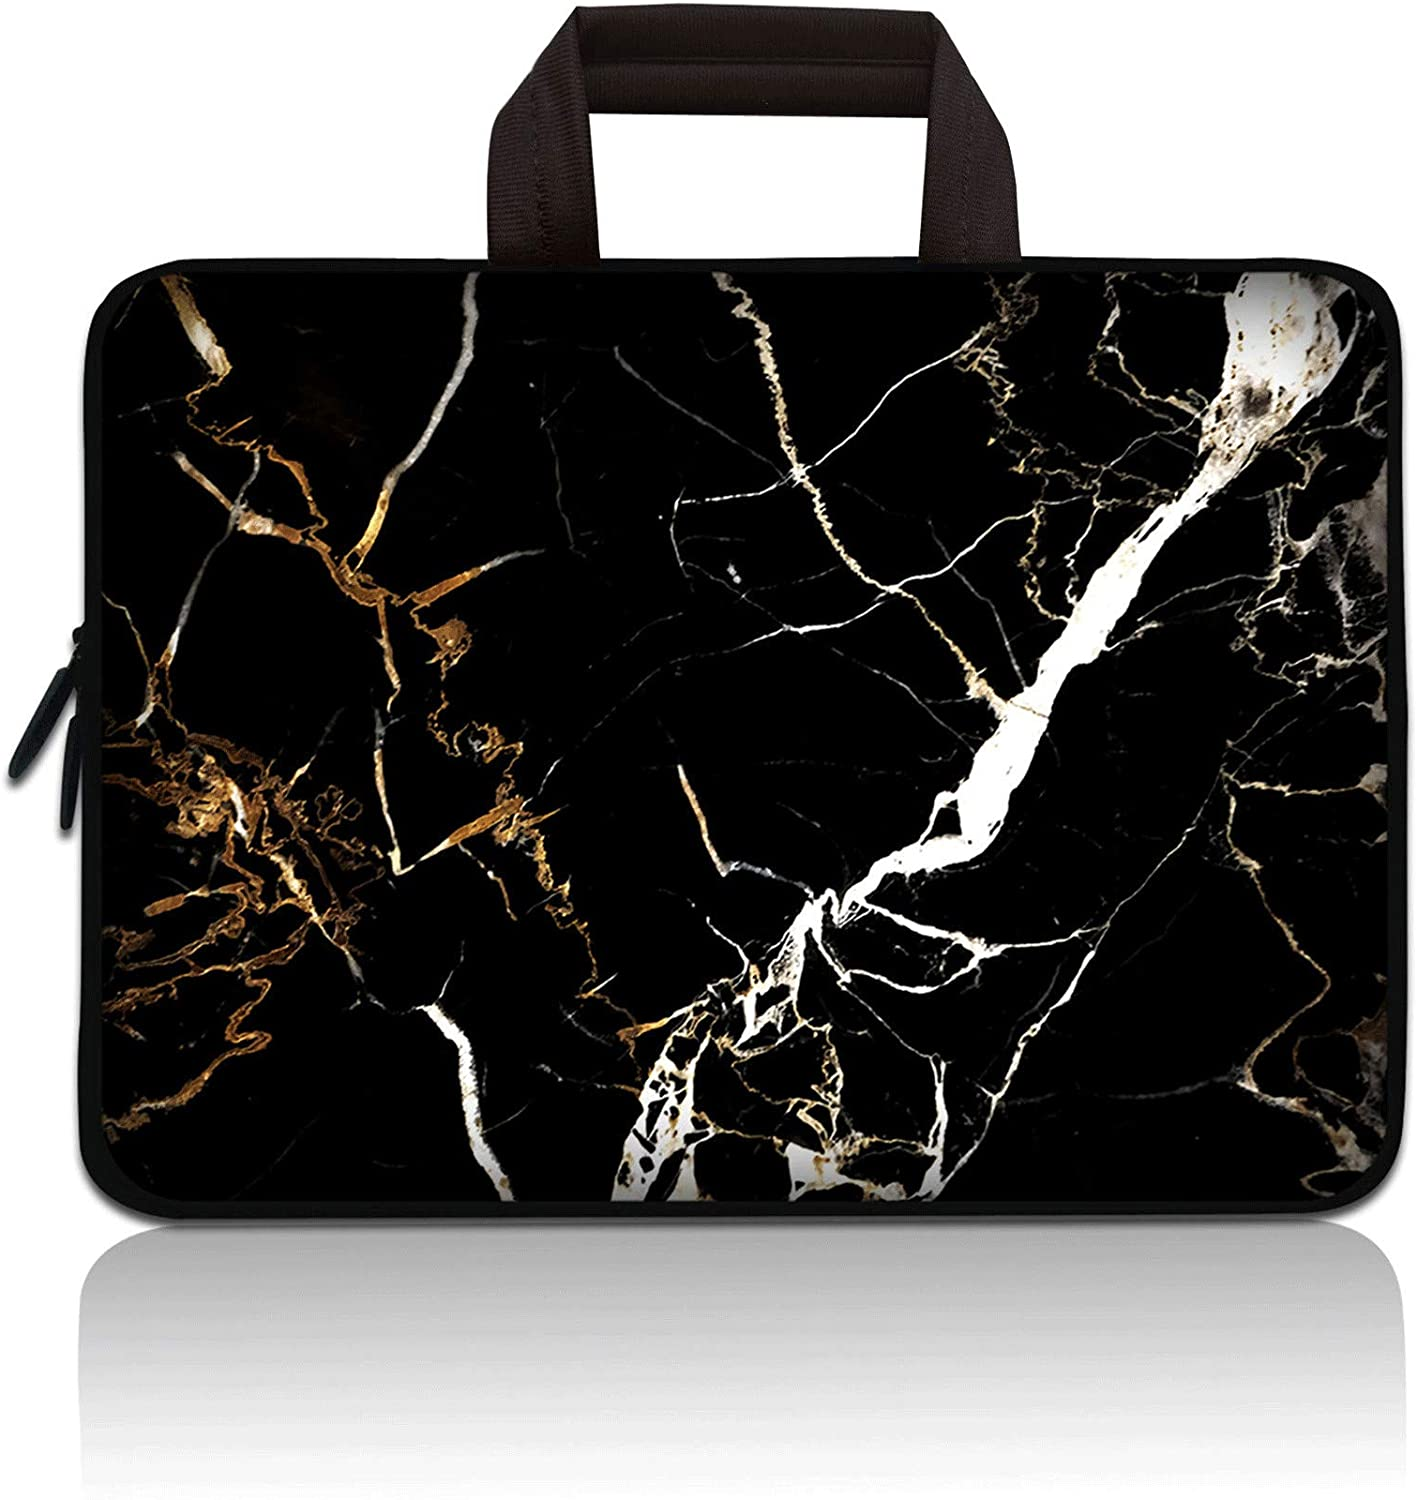 11 11.6 12 12.5 inch Laptop Carrying Bag Chromebook Case Notebook Ultrabook Bag Tablet Cover Neoprene Sleeve Compatible with Apple MacBook Air Samsung Google Acer HP DELL Lenovo Asus (Black Marble)